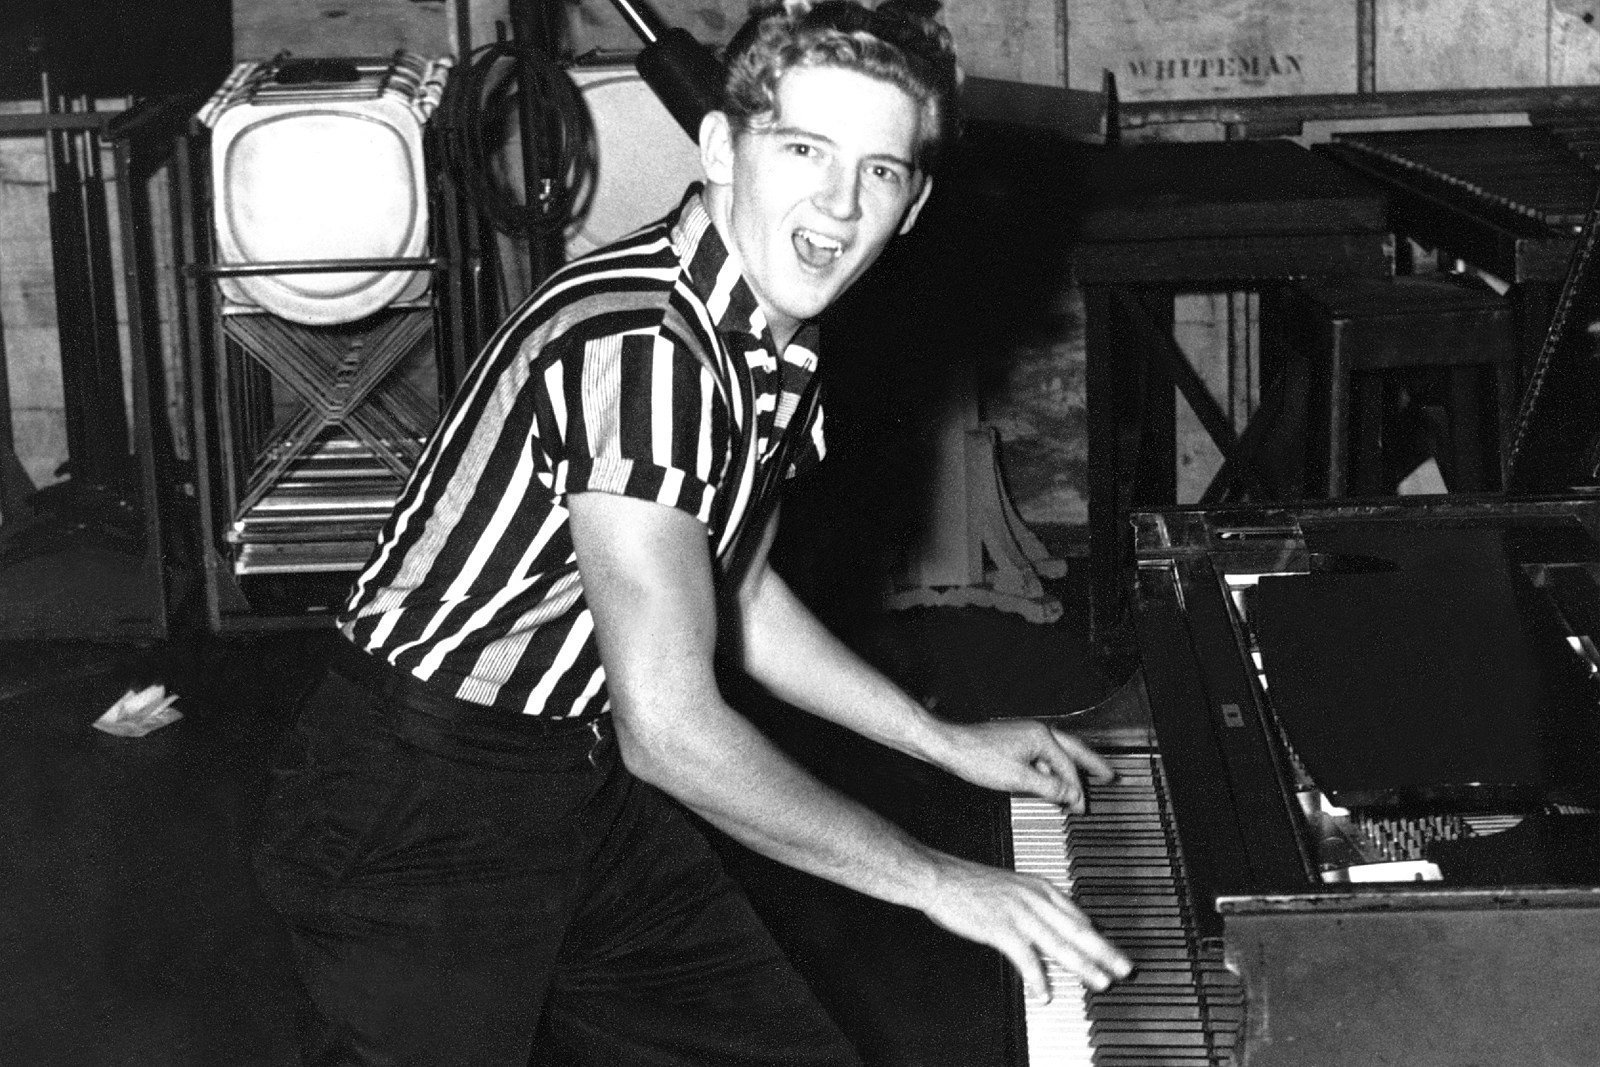 Jerry Lee Lewis al pianoforte